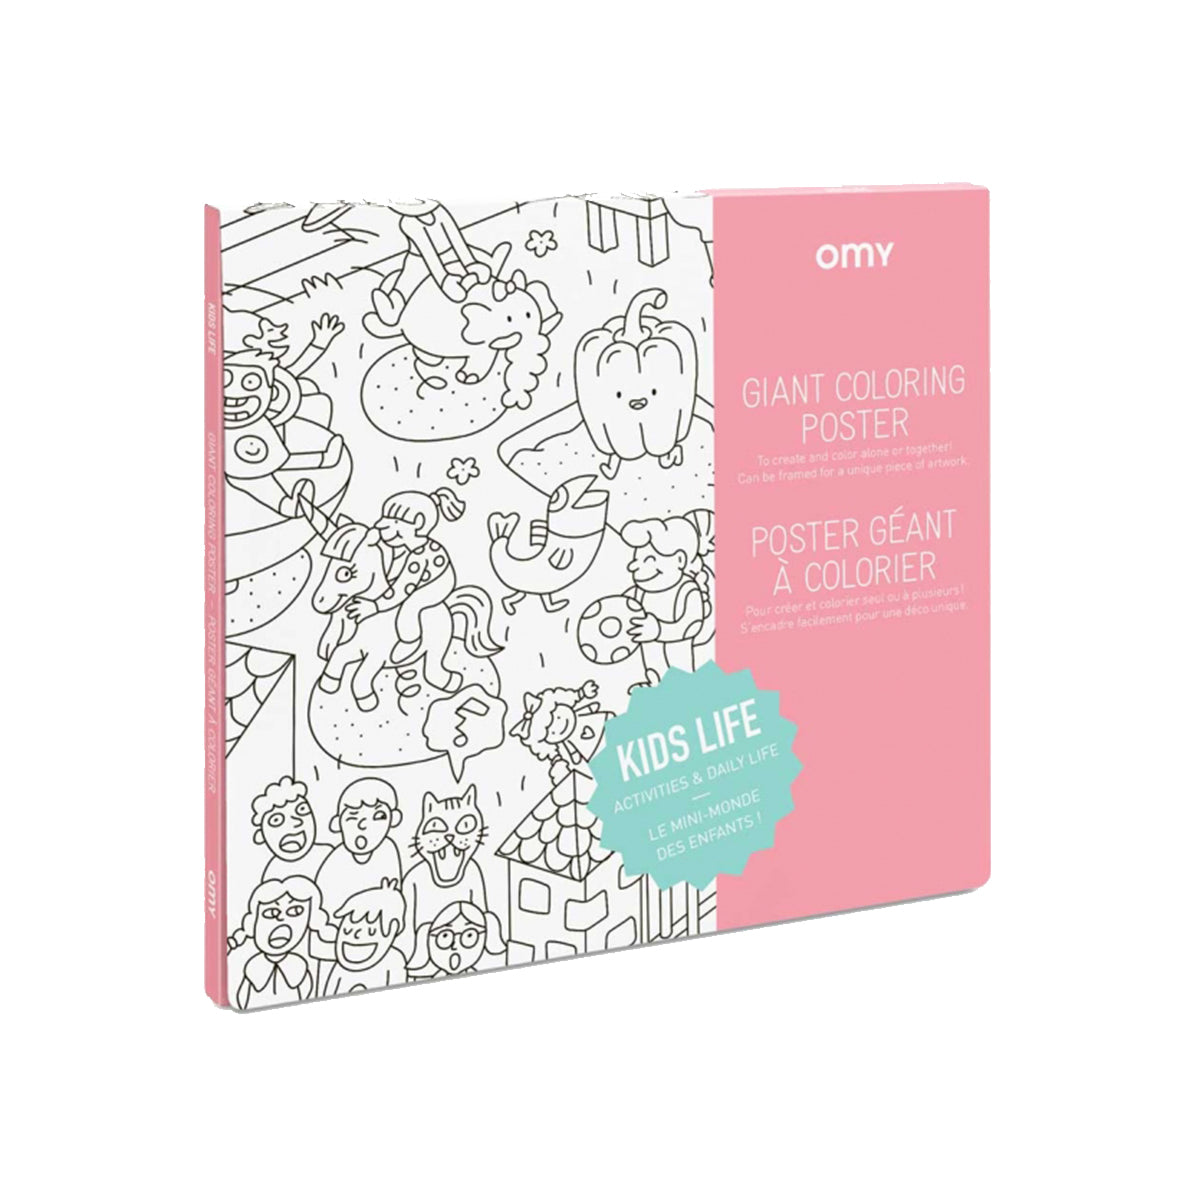 Giant Coloring Poster: Kids Life by Omy